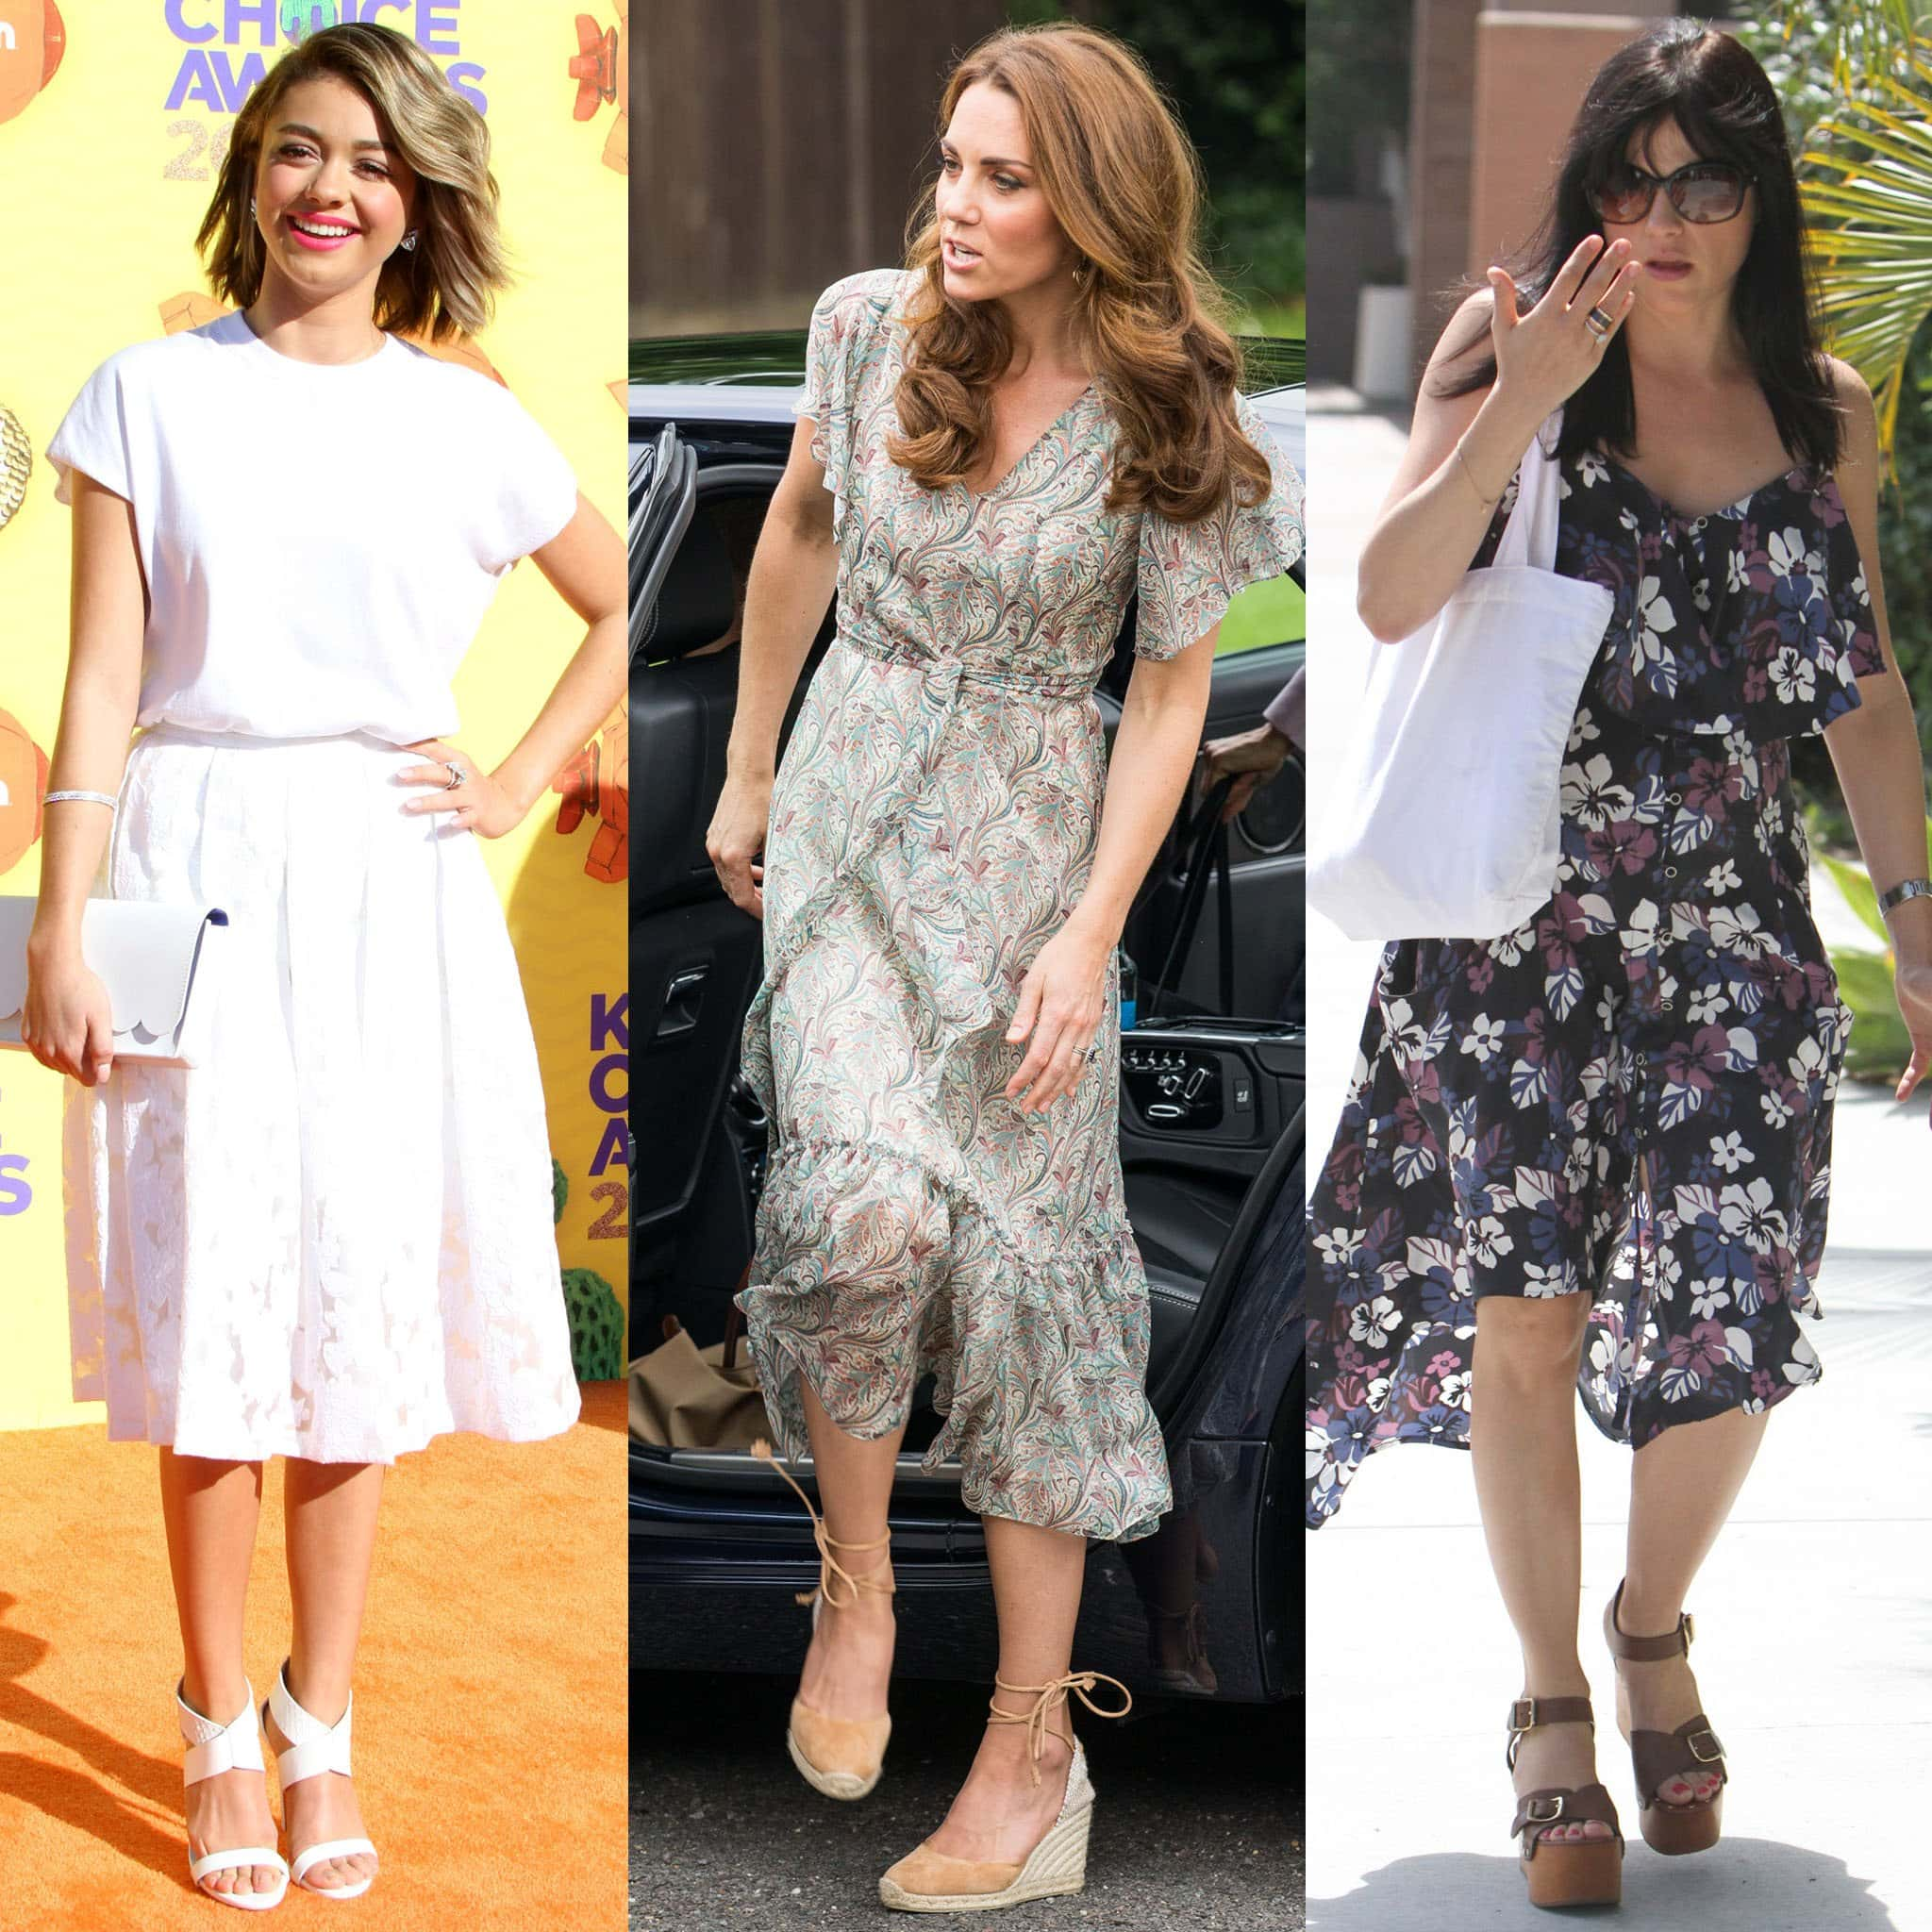 Sarah Hyland, Kate Middleton, and Selma Blair wears summer midi dresses with wedge sandals